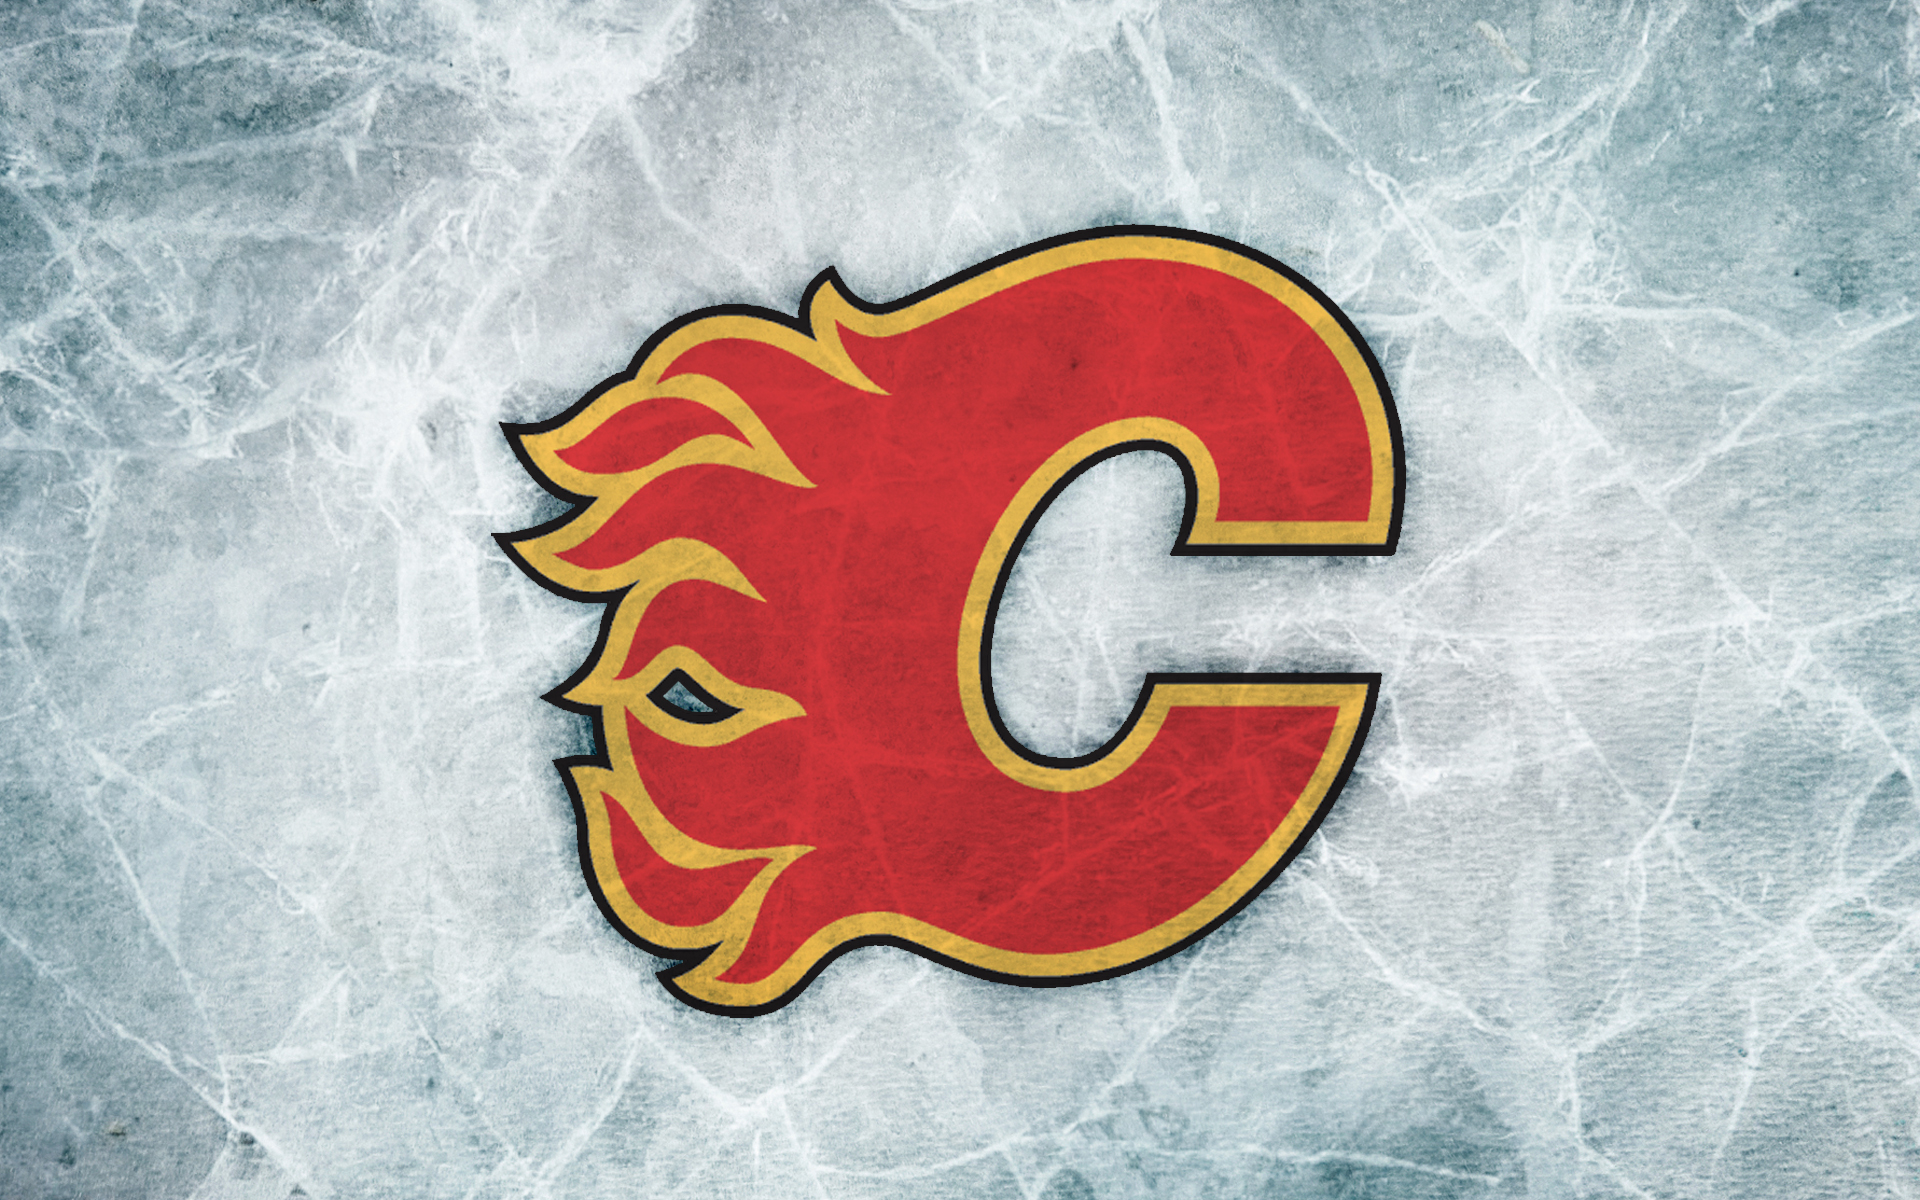 Calgary Flames Logo Wallpaper flames ice wallpaper flickr   photo 1920x1200